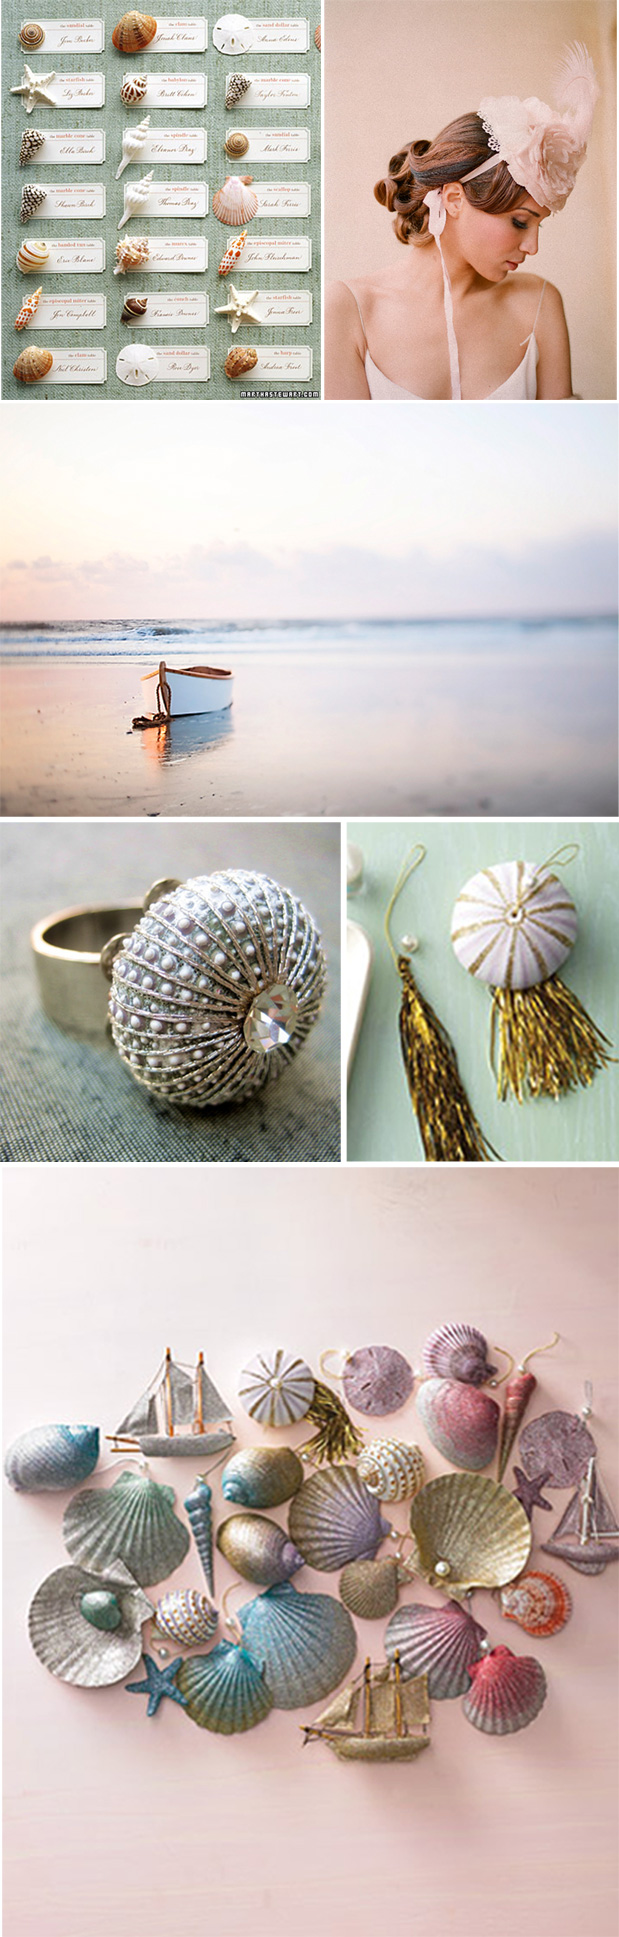 sea urchin glitter ornament bridal jewelry for beach wedding twigs and honey elizabeth messina sunset boat martha stewart craft ideas